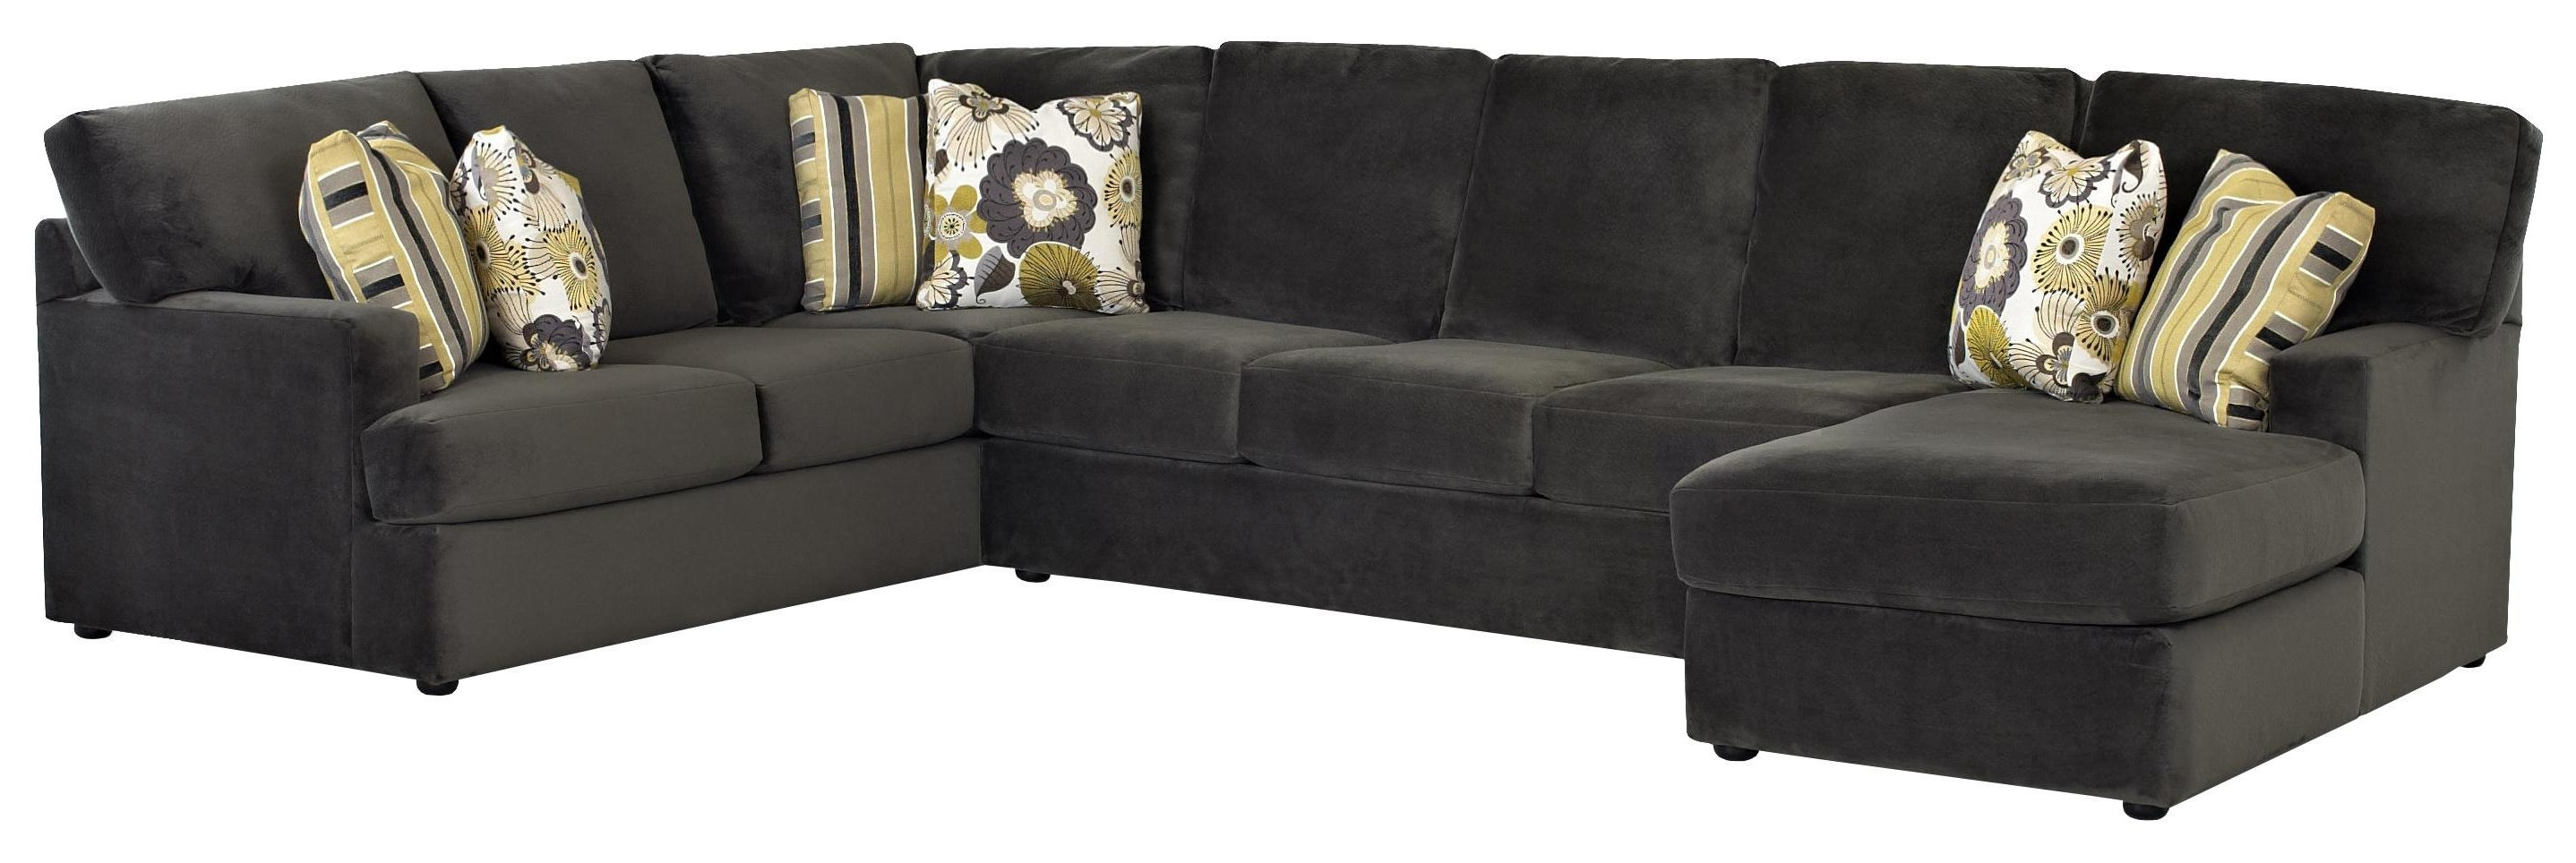 Gardiners Sectional Sofas Within Fashionable Sectional Sofa With Left Side Chaiseklaussner (View 6 of 15)